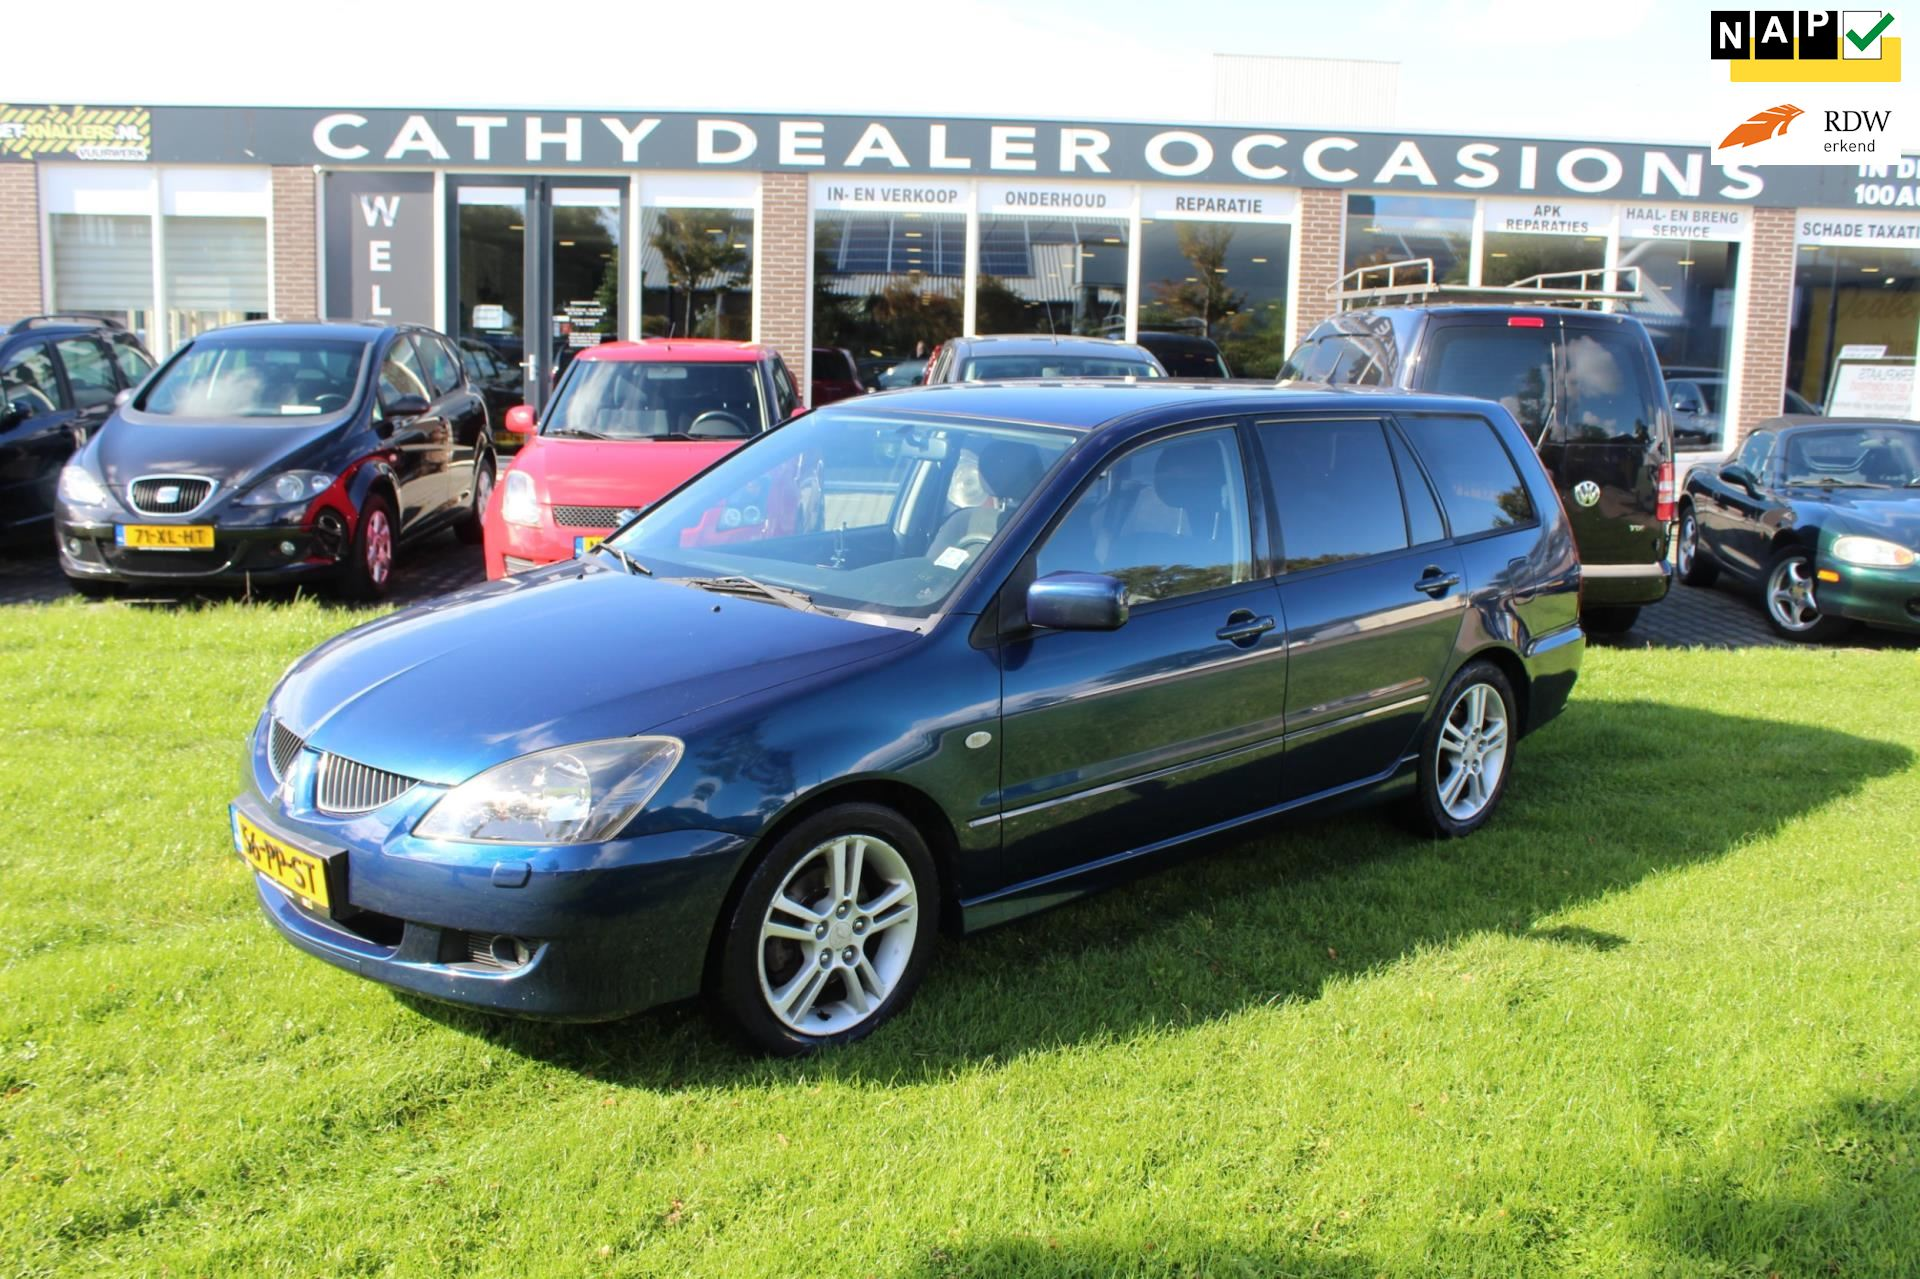 Mitsubishi Lancer Station Wagon occasion - Cathy Dealer Occasions